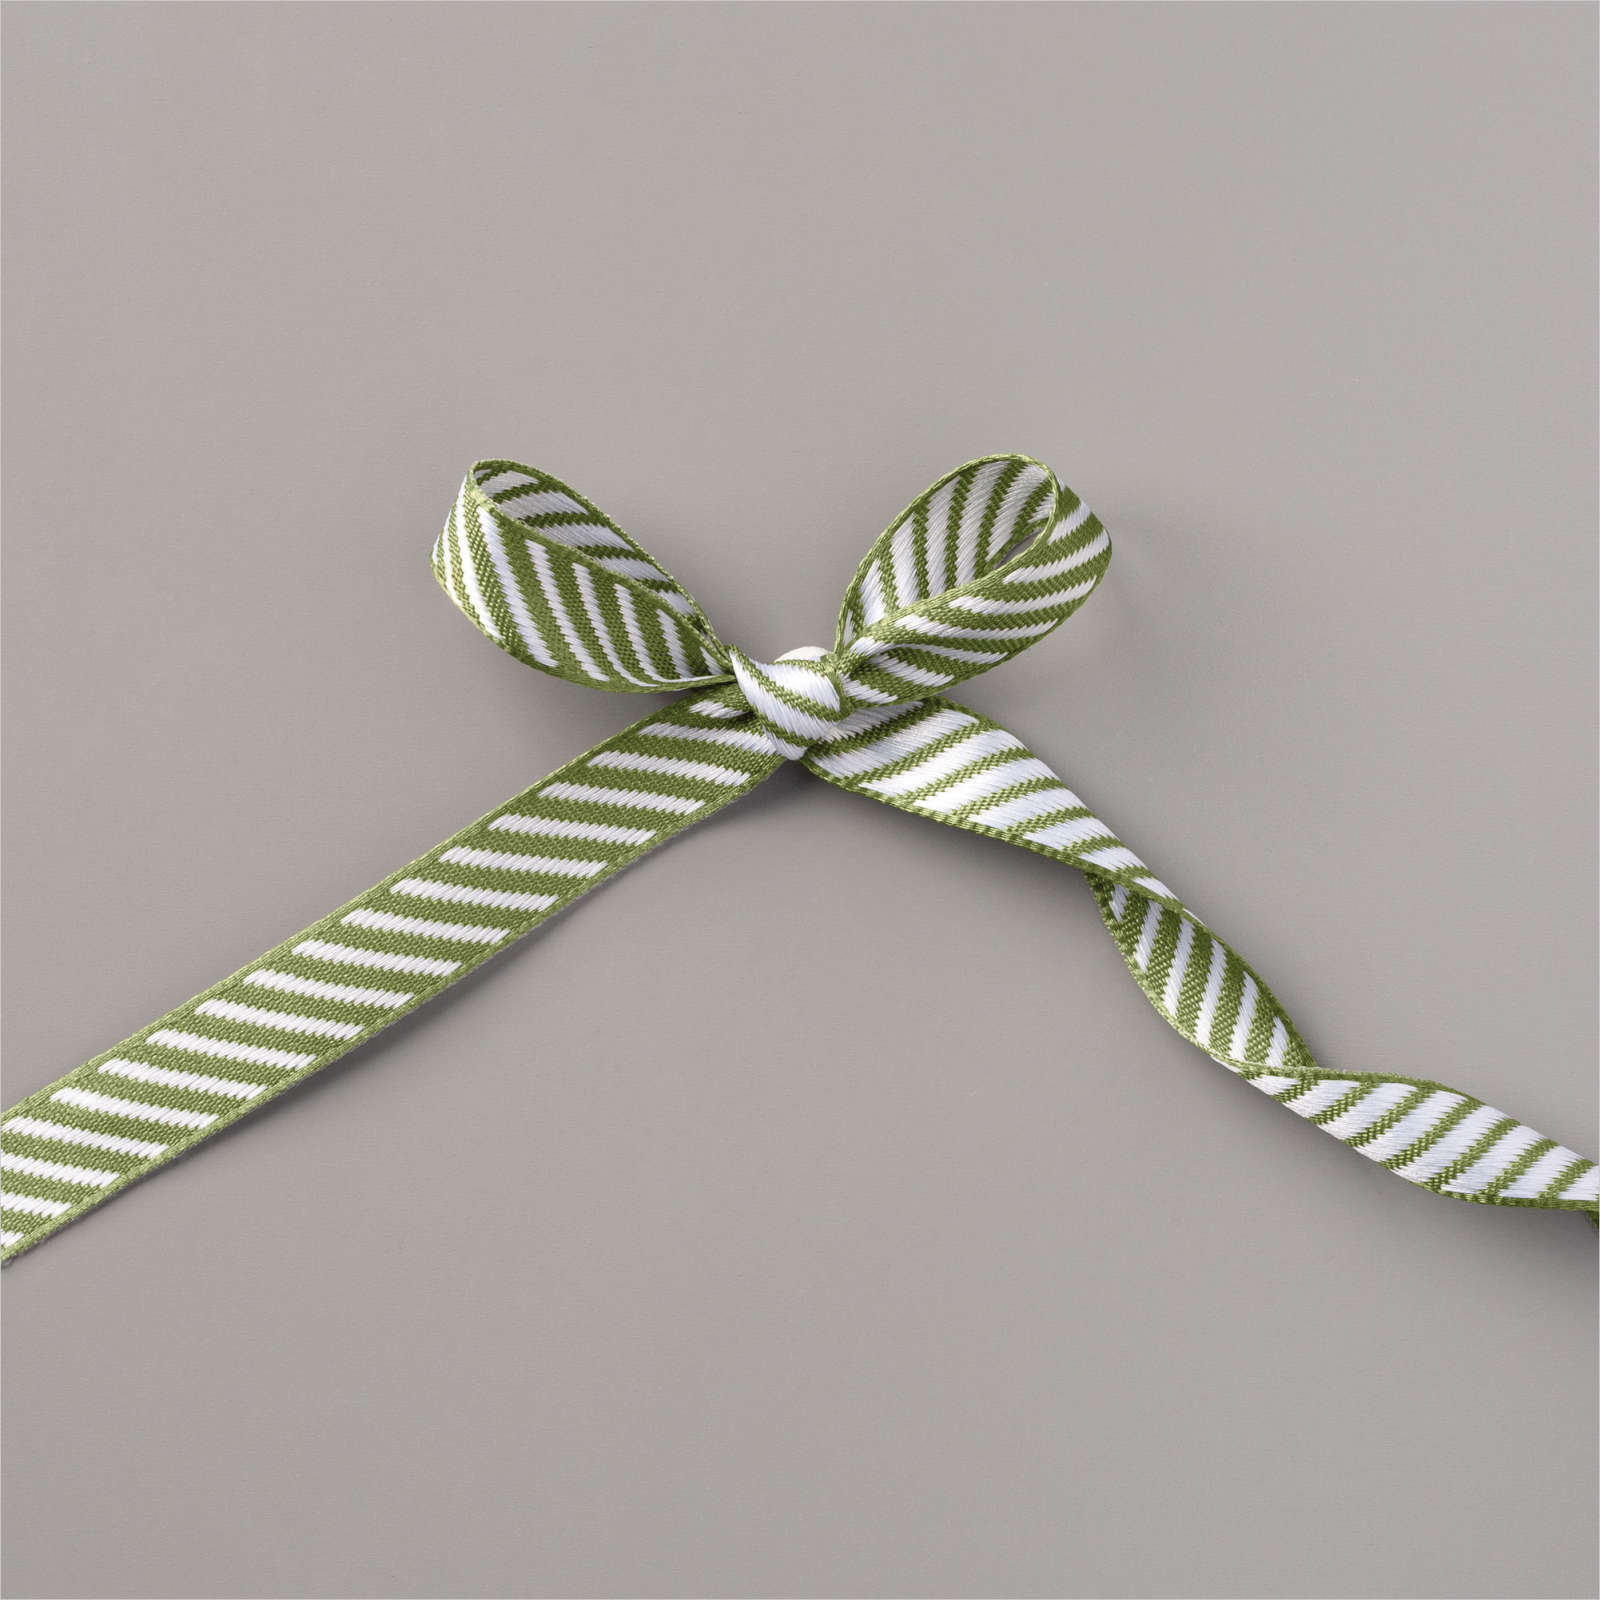 "MOSSY MEADOW 3/8"" (1 CM) DIAGONAL STRIPE RIBBON"